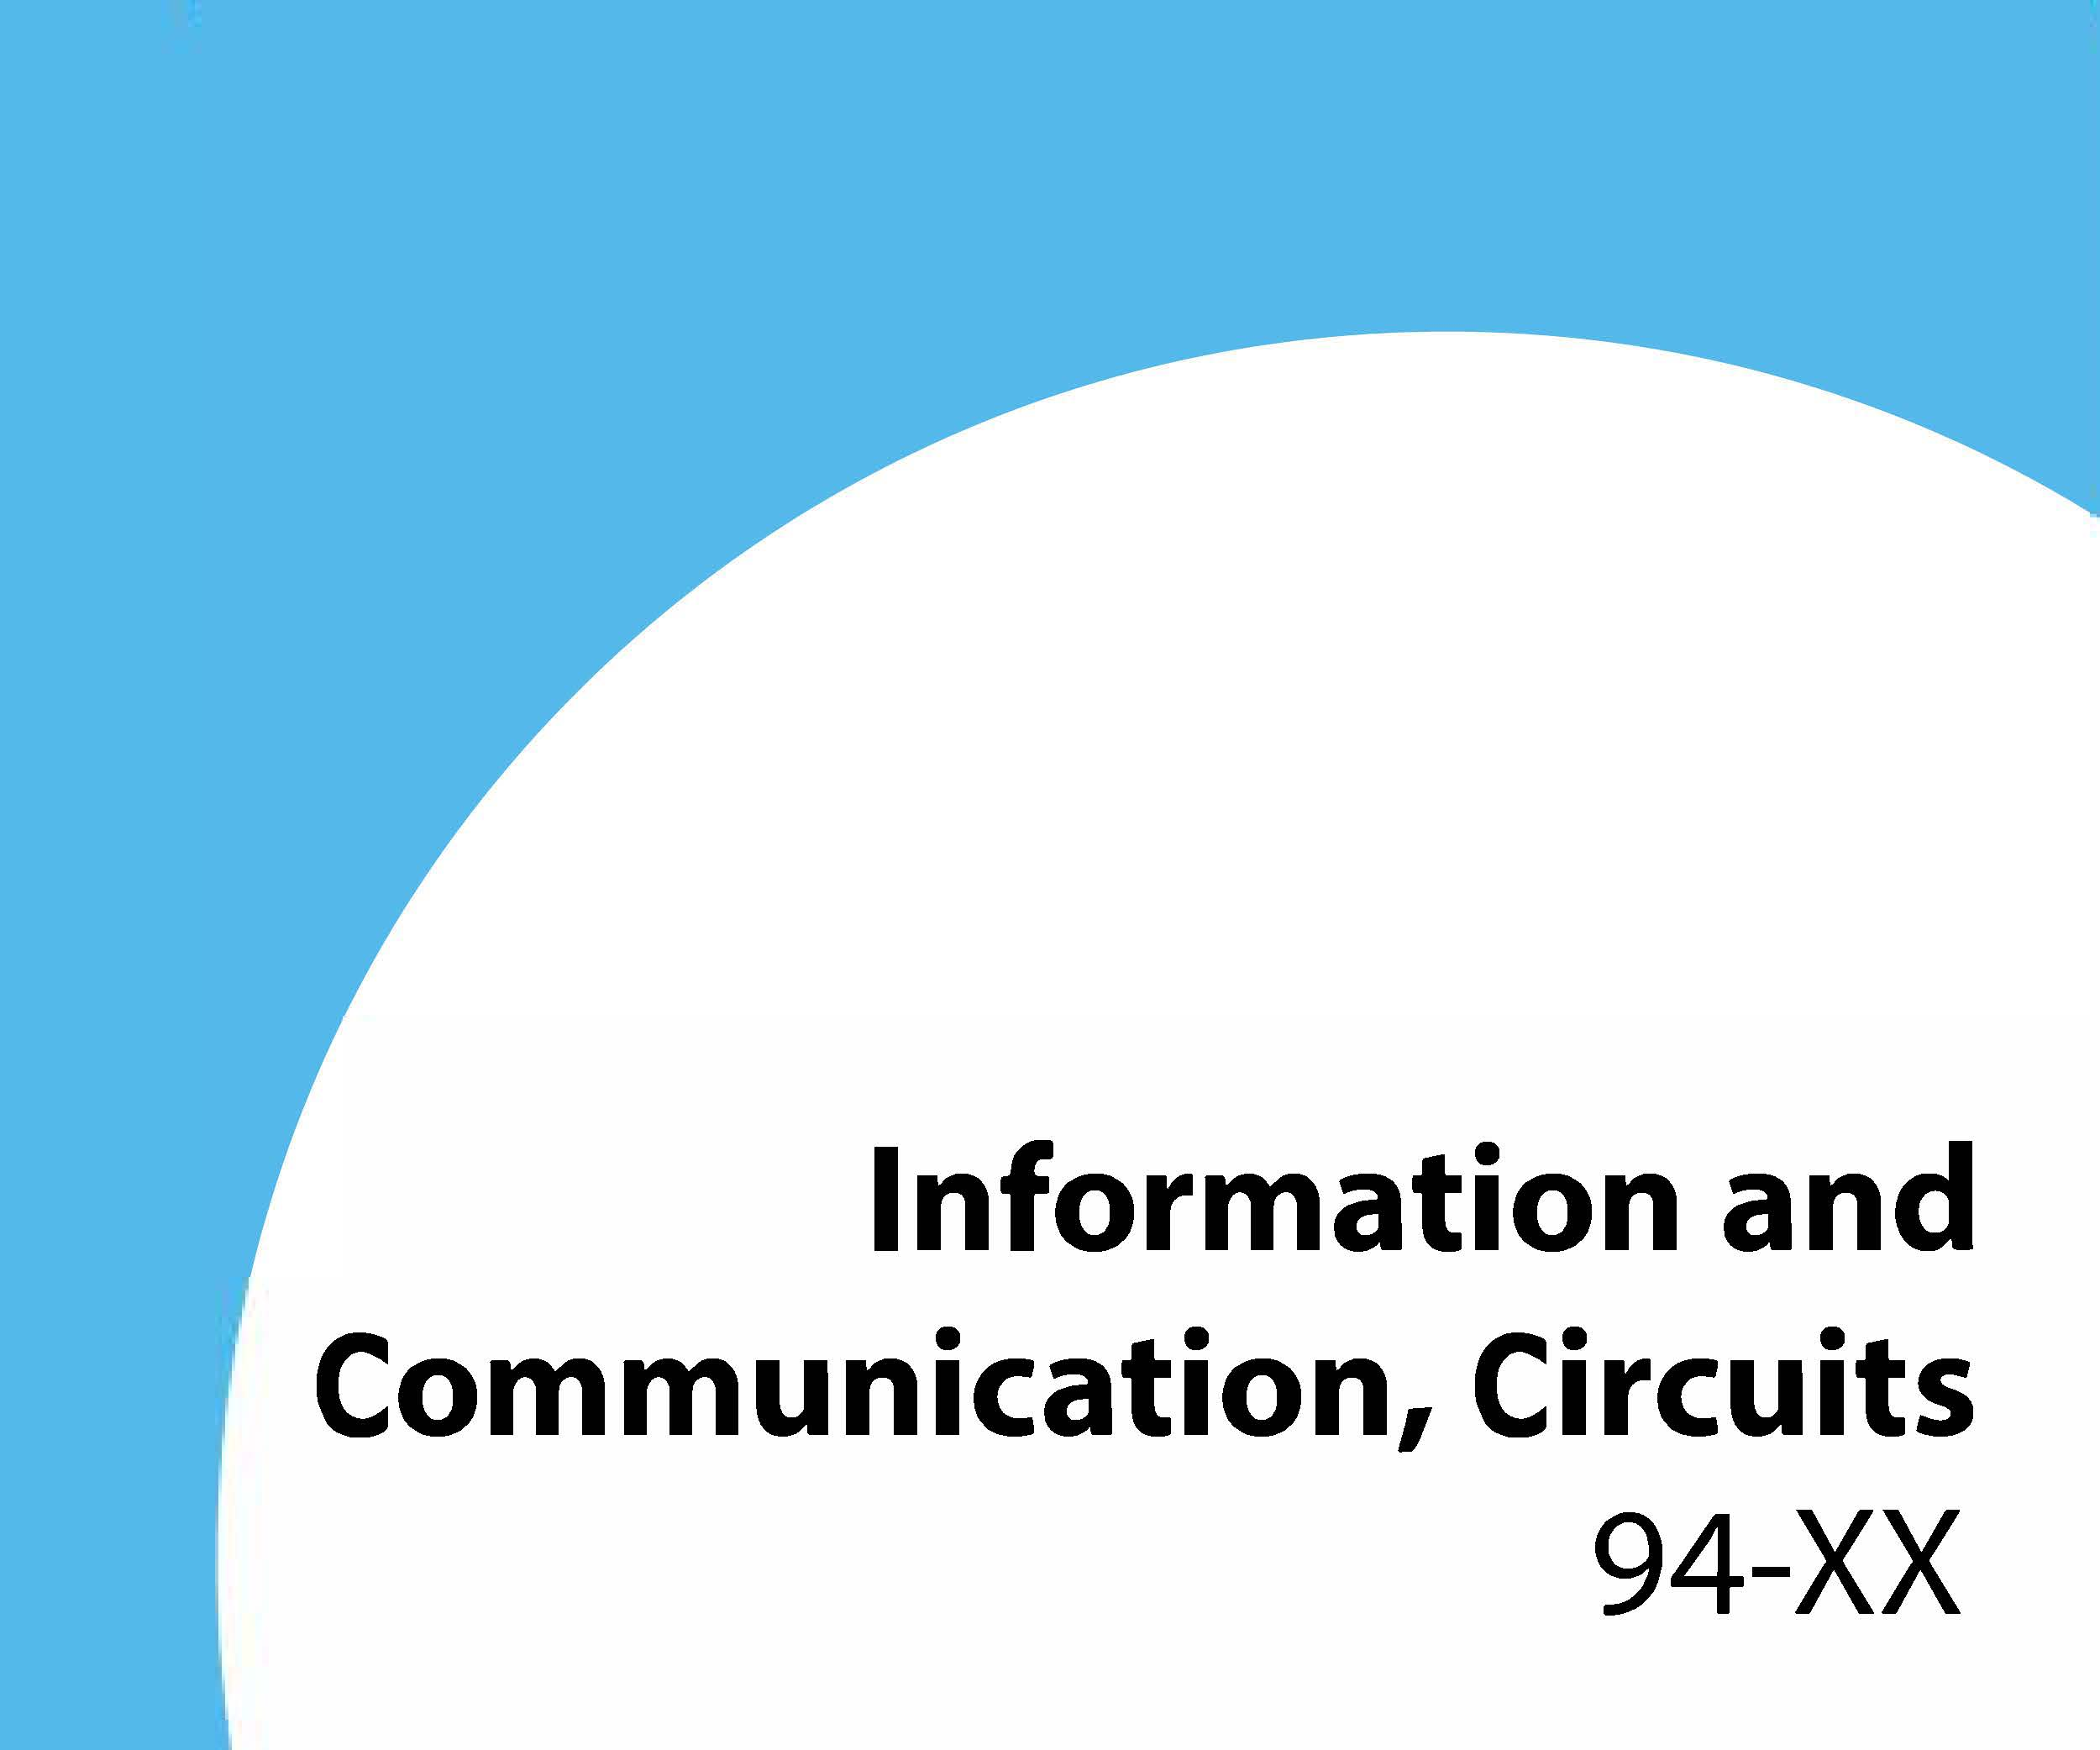 94-xx Information and communication, circuits